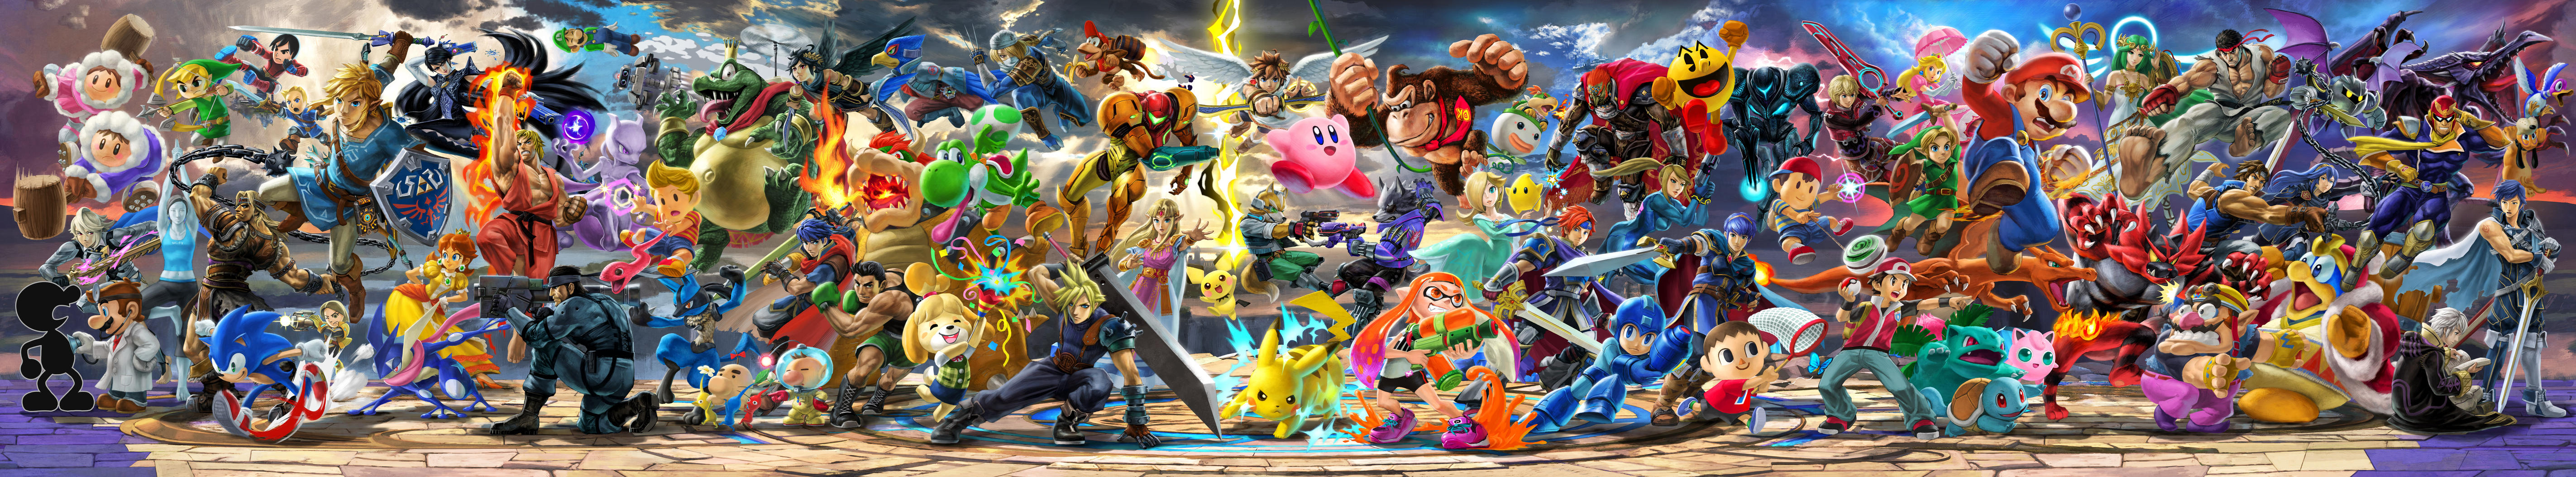 Super Smash Bros. Ultimate OFFICIAL Panoramic Art by Leafpenguins